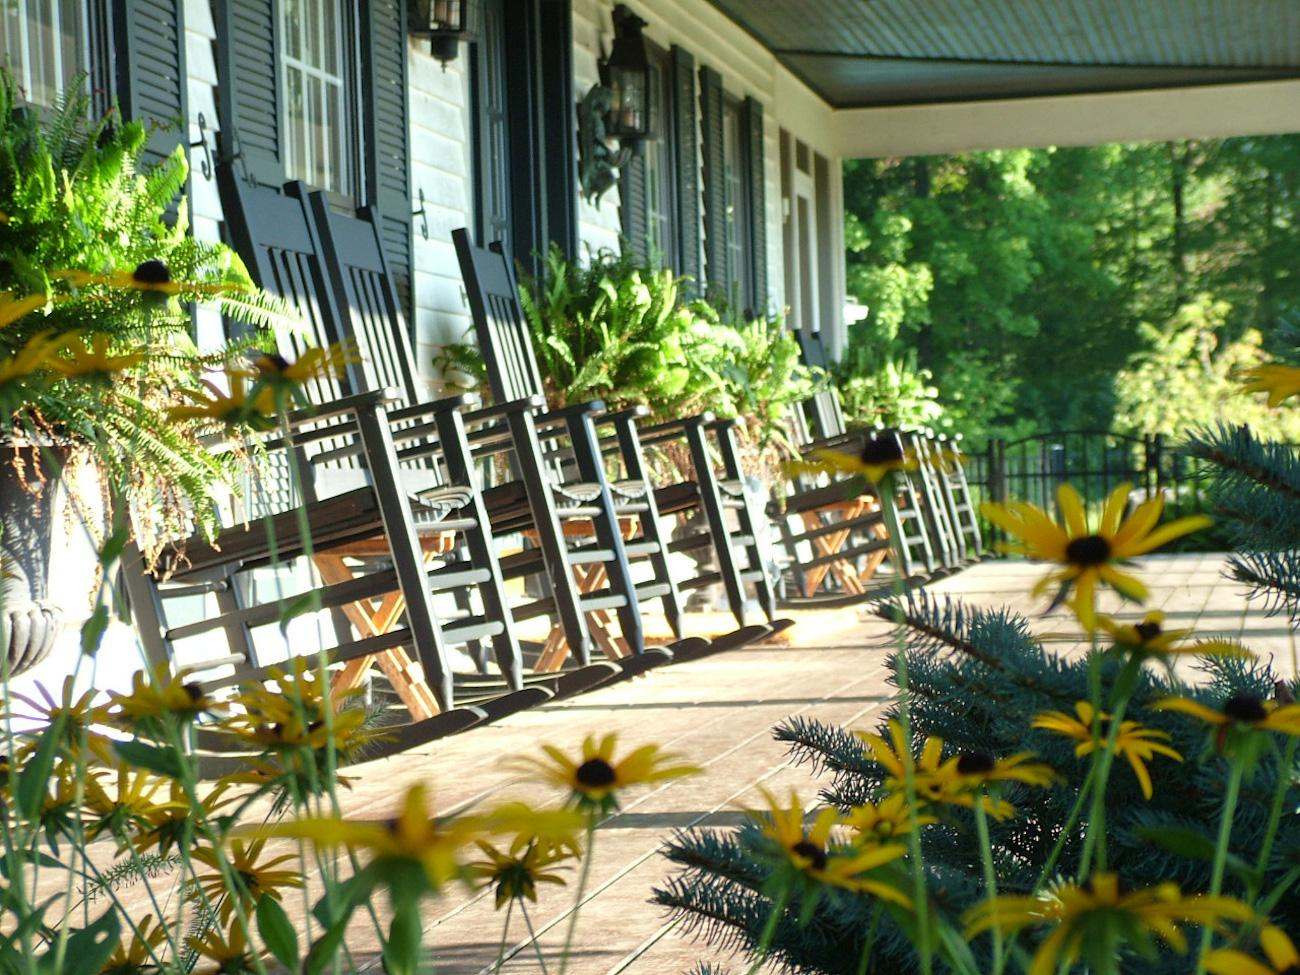 Recognized as one of the nation's finest bed and breakfasts, the award-winning Welsh Hills Inn is nestled on 15 wooded acres of rolling hills. Granville's equestrian countryside awaits outside. while antiques and original artwork adorn the interior. Enjoy the hot tub and outdoor heated pool, courtyard gardens and walking trails, target or sporting clays shooting, fishing, and more. Or just sit back and relax as a fire crackles in the outdoor stone fireplace. ADDRESS: 2133 Cambria Mill Road, Granville, OH (43023) / Image: Garrett Martin via Explore Licking County // Published: 8.23.19